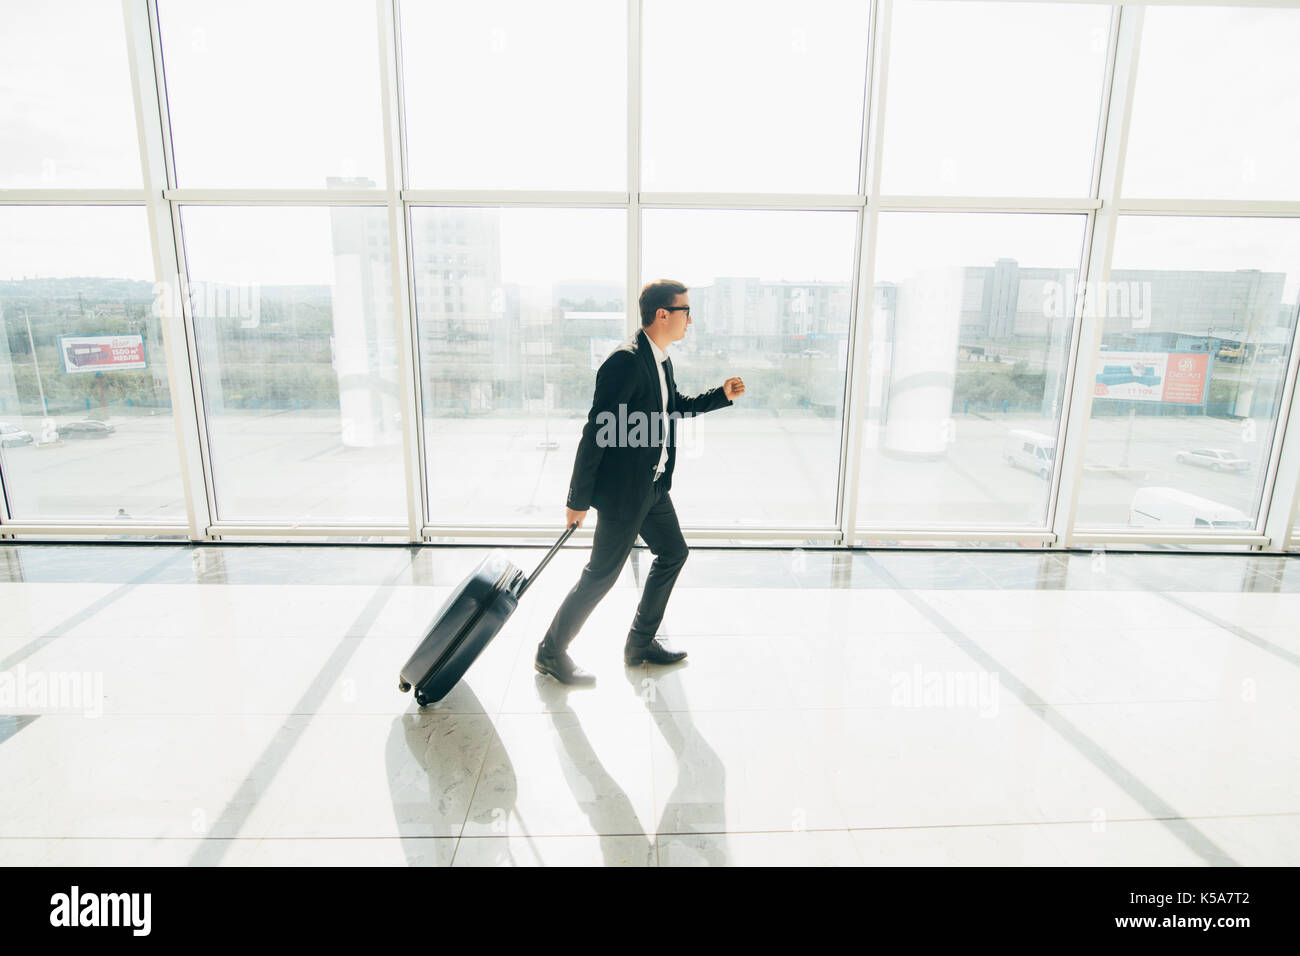 Business man at international airport moving to terminal gate for airplane travel trip - Mobility concept and aerospace industry flight connections - Stock Image